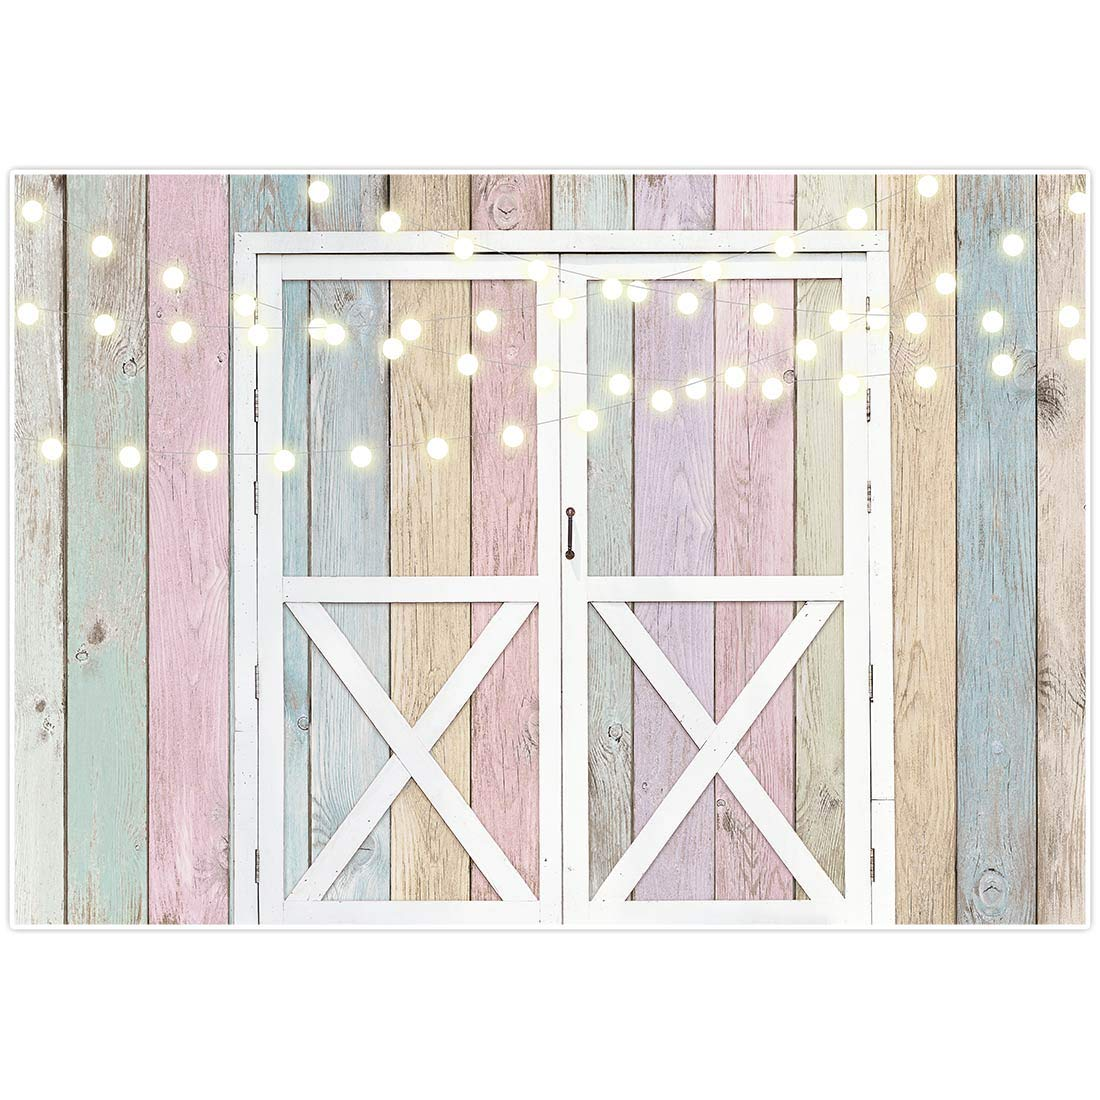 Allenjoy Rustic Colorful Wood Board Barn Spring Backdrop Photography Easter Rural Door Wedding Bridal Baby Shower Bday Party Wall Decor Banner Background 7x5ft Western Kids Newborn Photo Booth Props